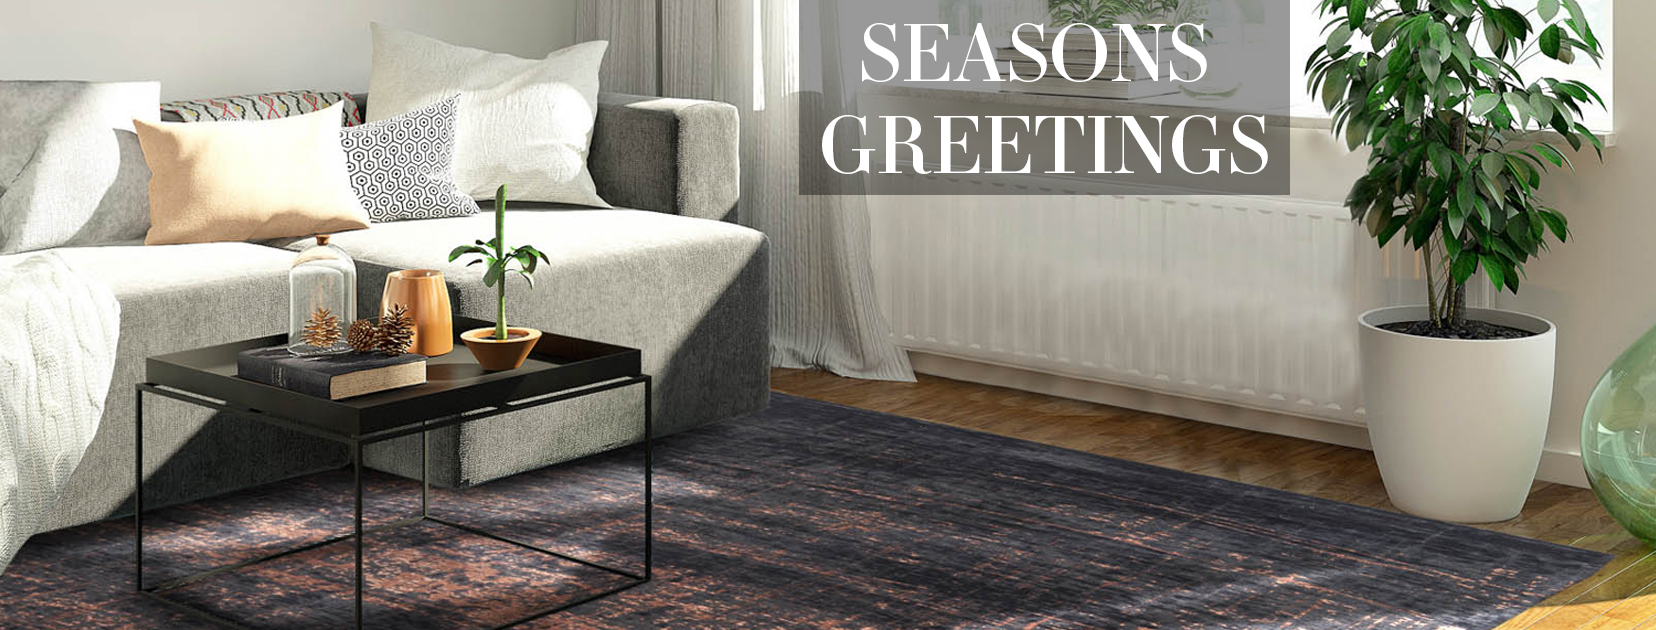 seasons greetings from the rug seller christmas banner 2016